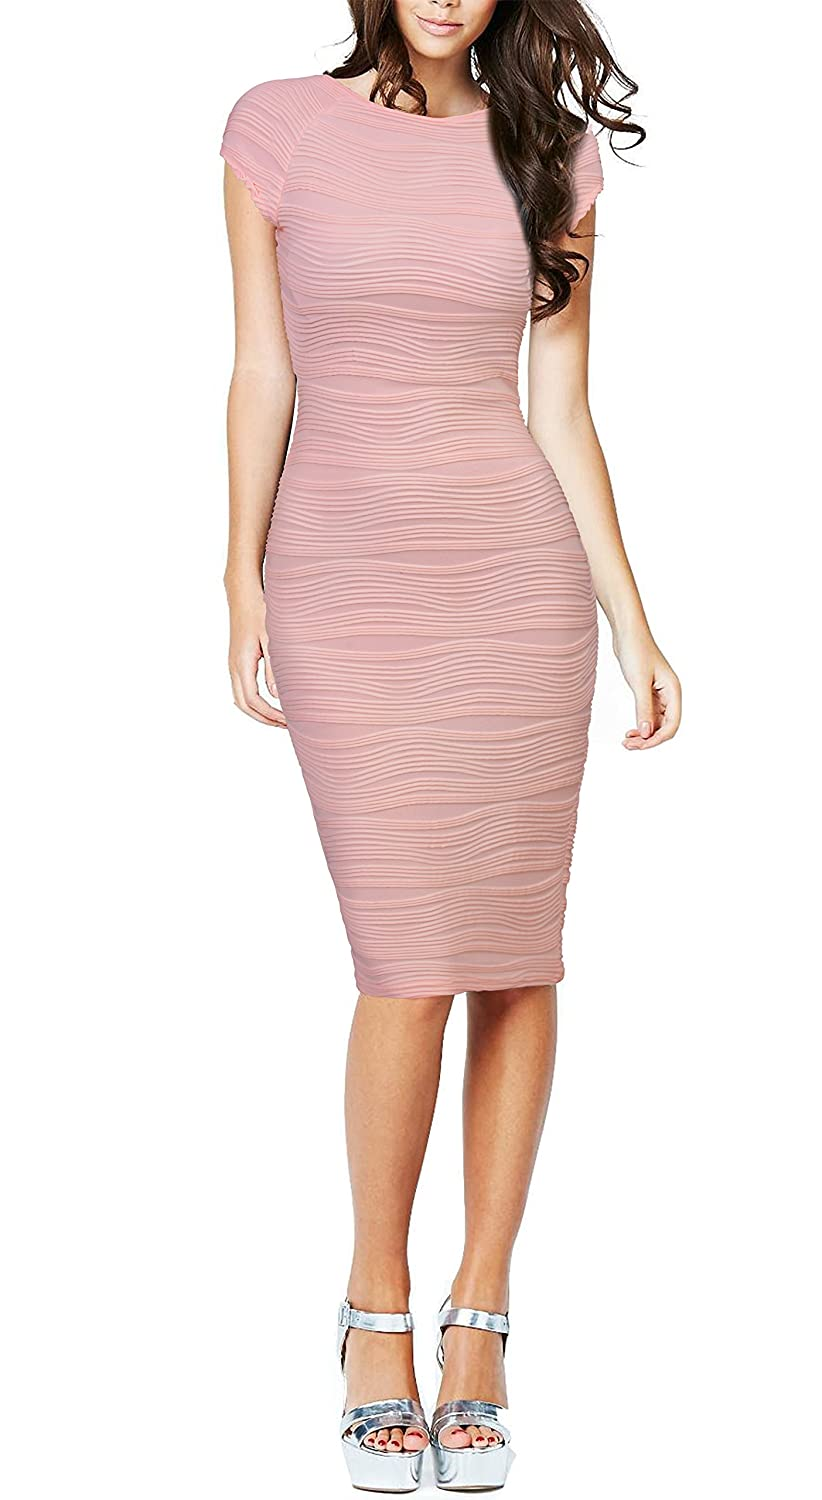 REPHYLLIS Women's Casual Boat Neck Slim Bodycon Business Party Work Pencil Dress RE60033